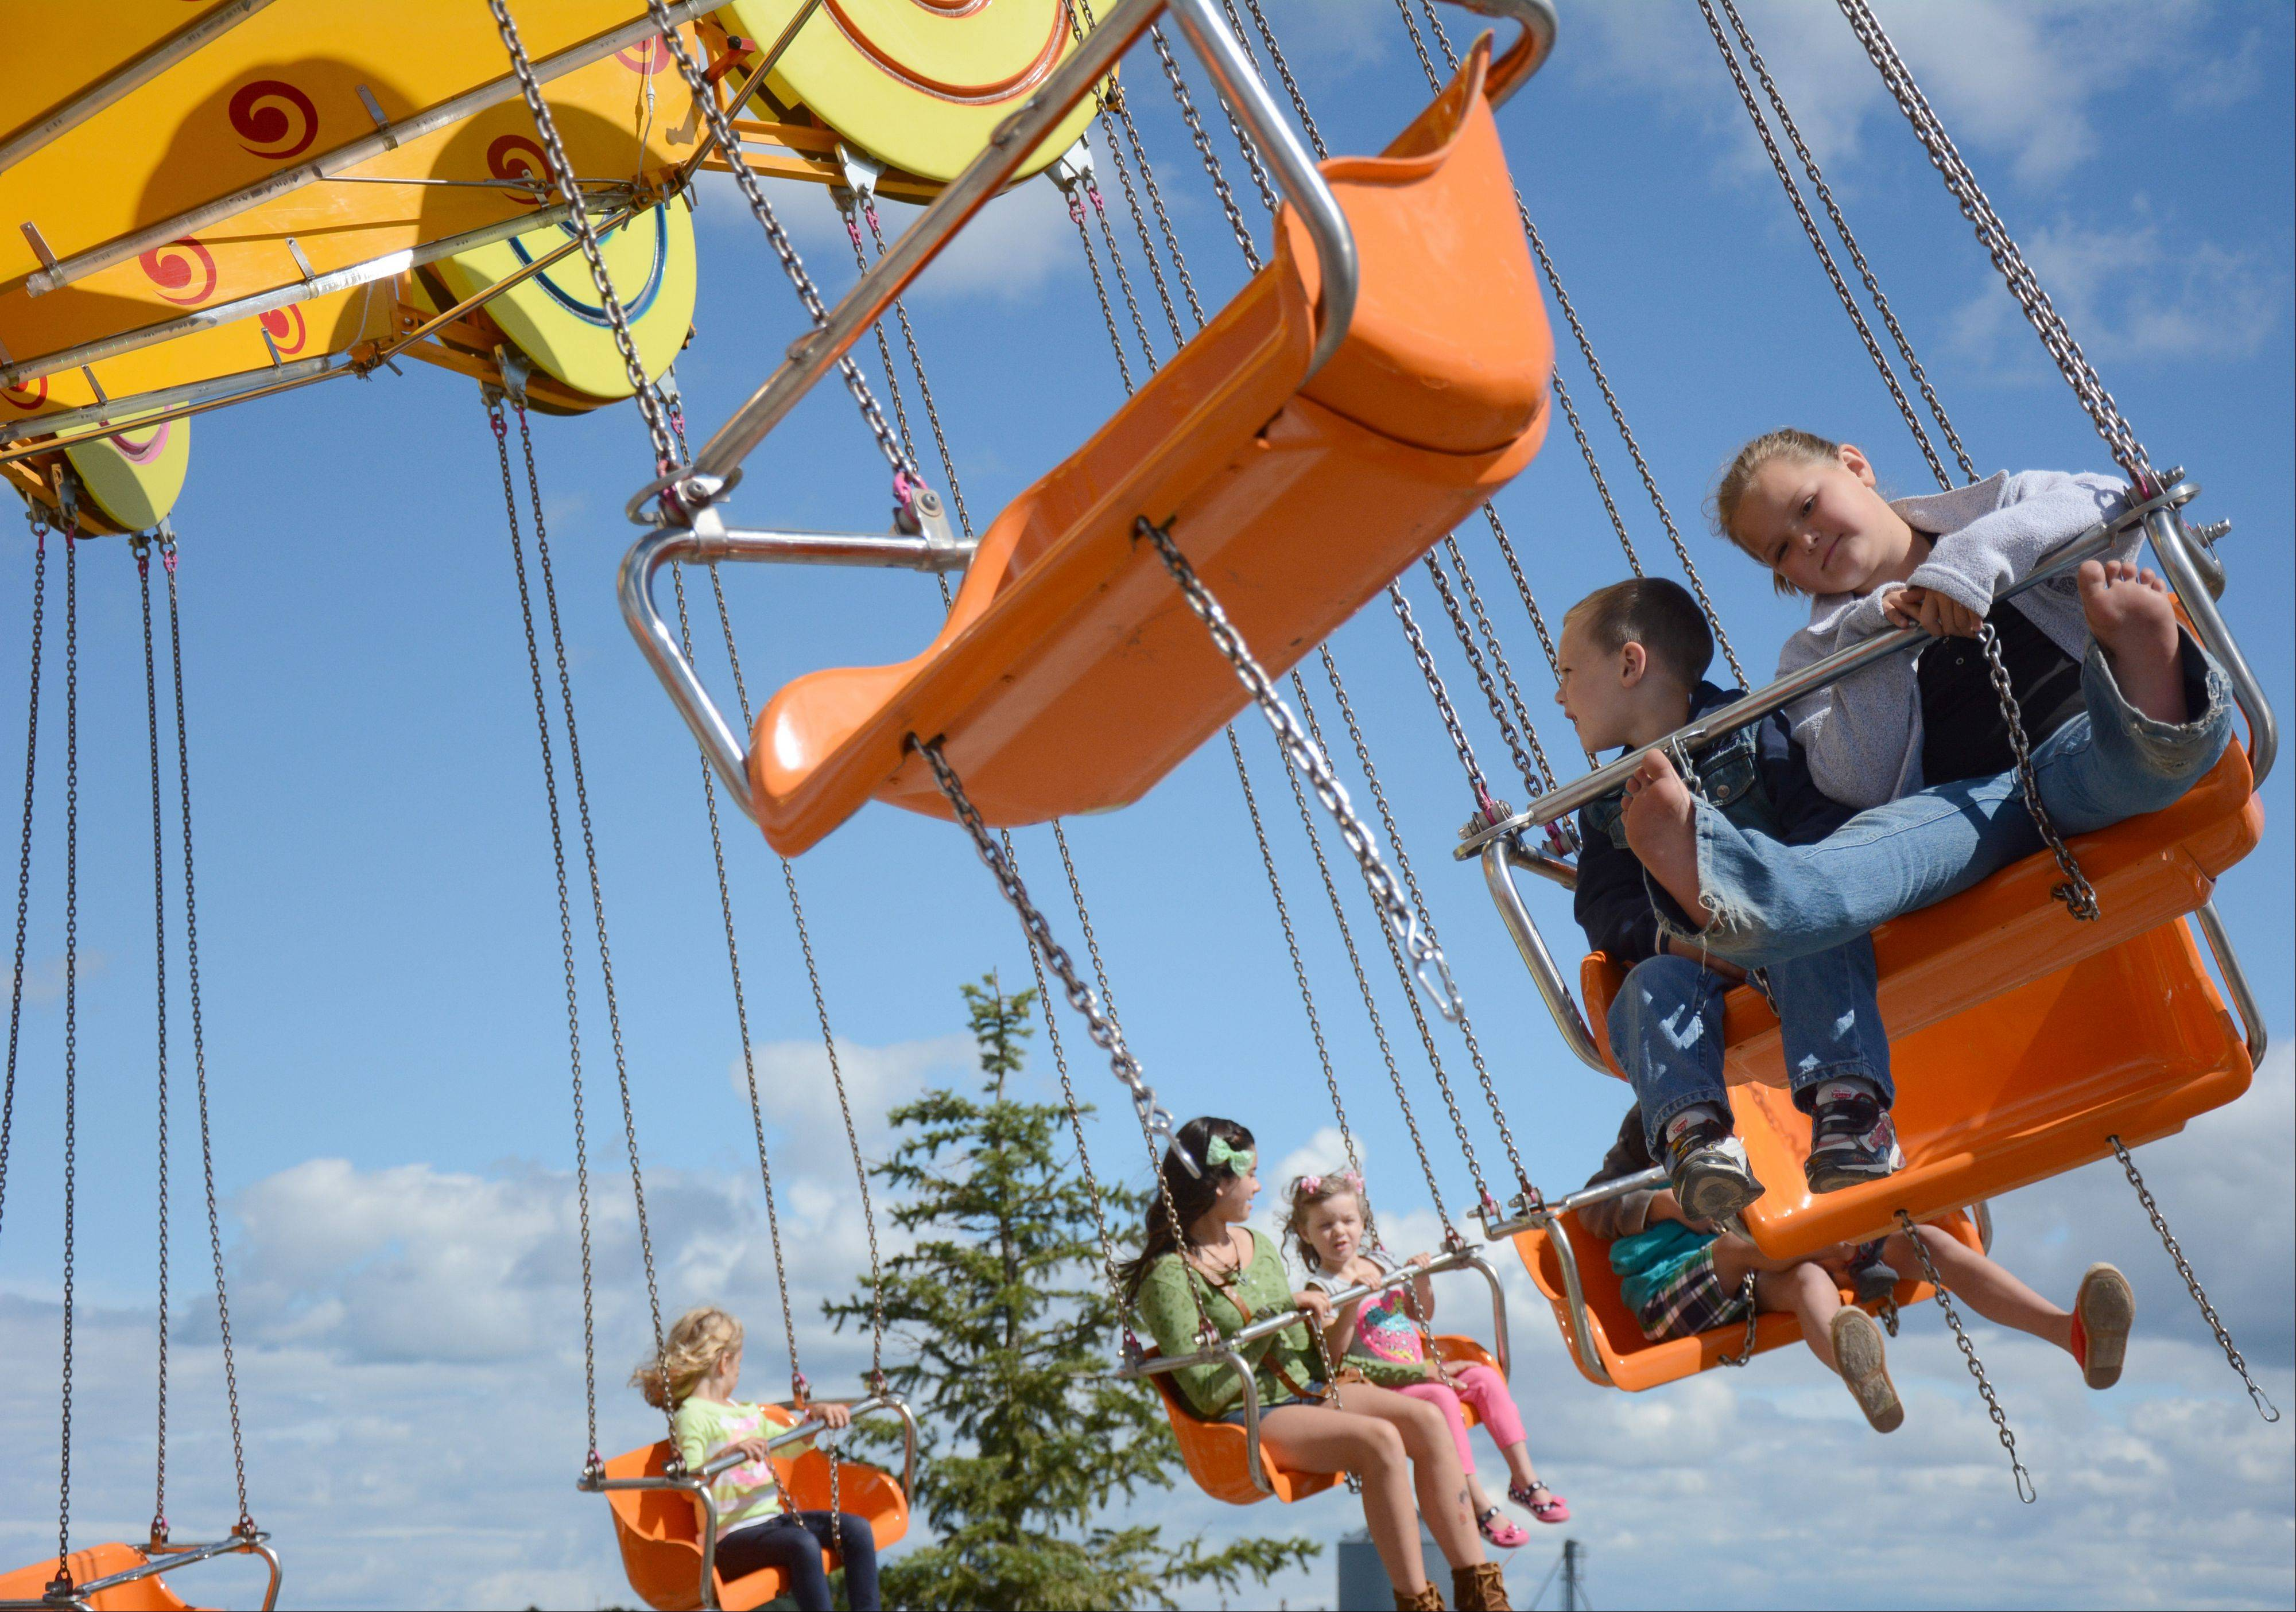 From left, Cullen Obrien, 3, and sister Aili, 9, both of Johnsburg, ride the Lolly Swing at the Lake County Fair Sunday, July 28.